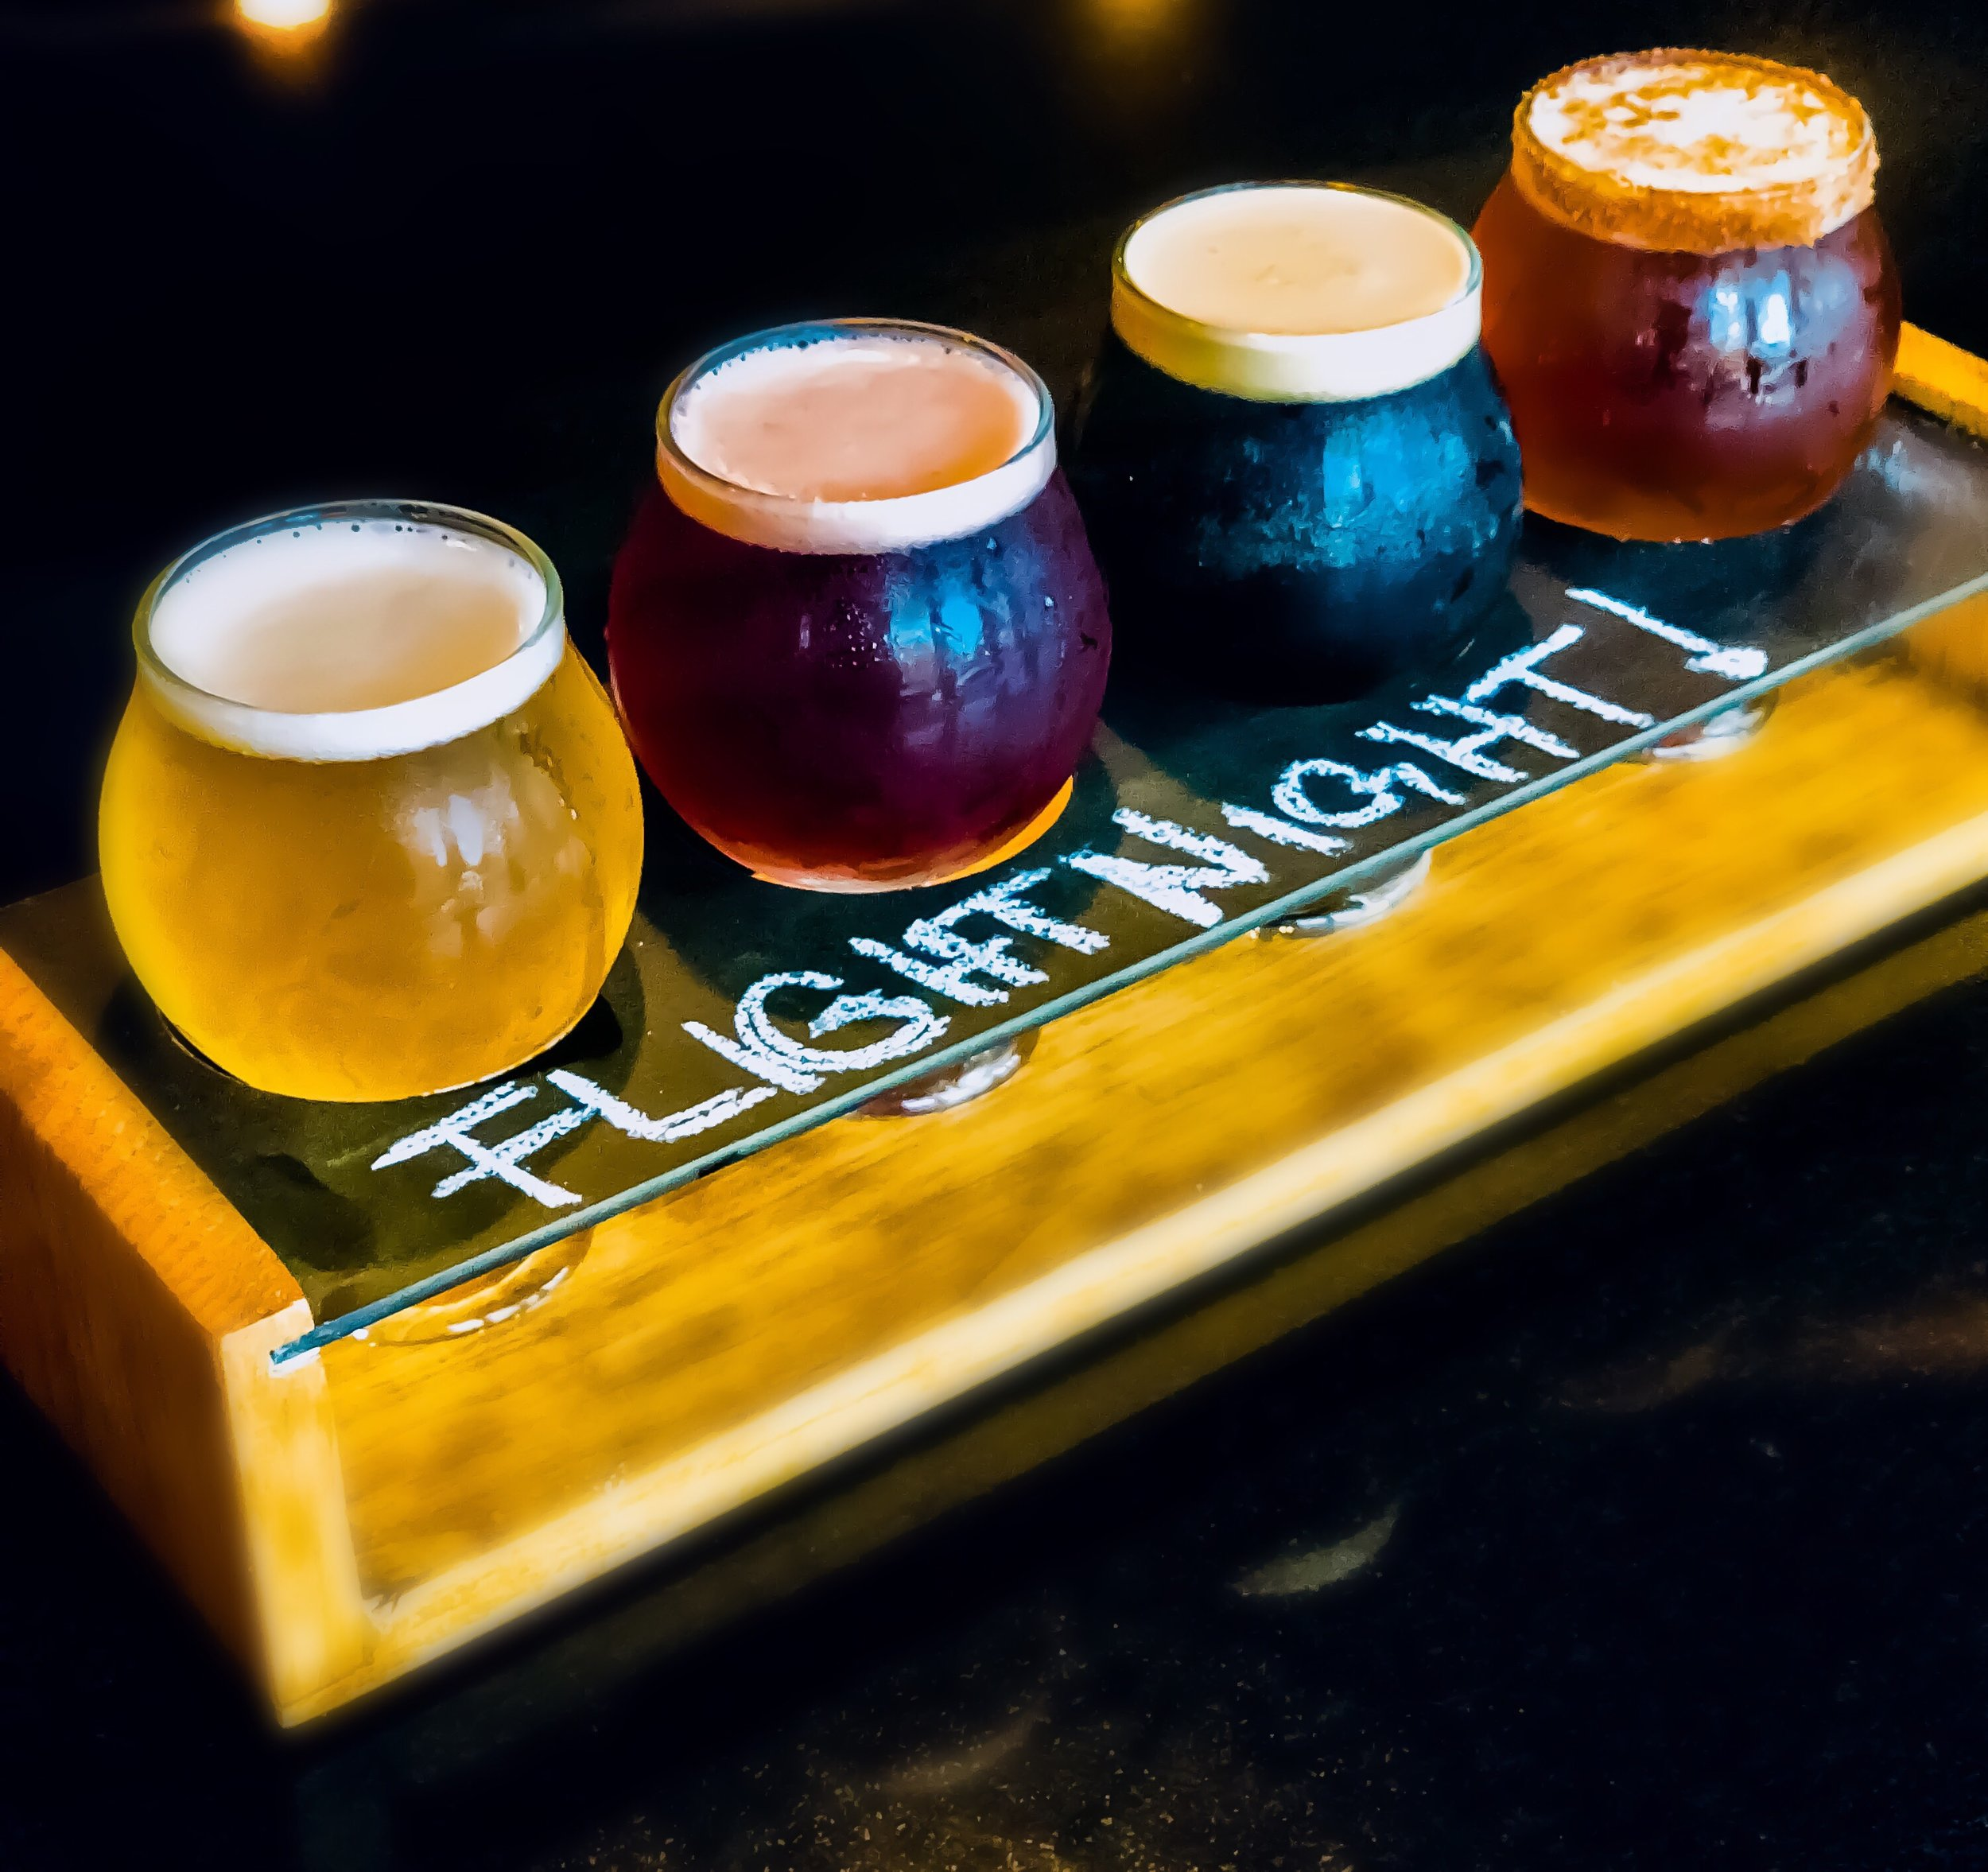 Every Wednesday, join us for $2 off Beer Flights, Build Your Own or Choose From The Villagers Flight List!